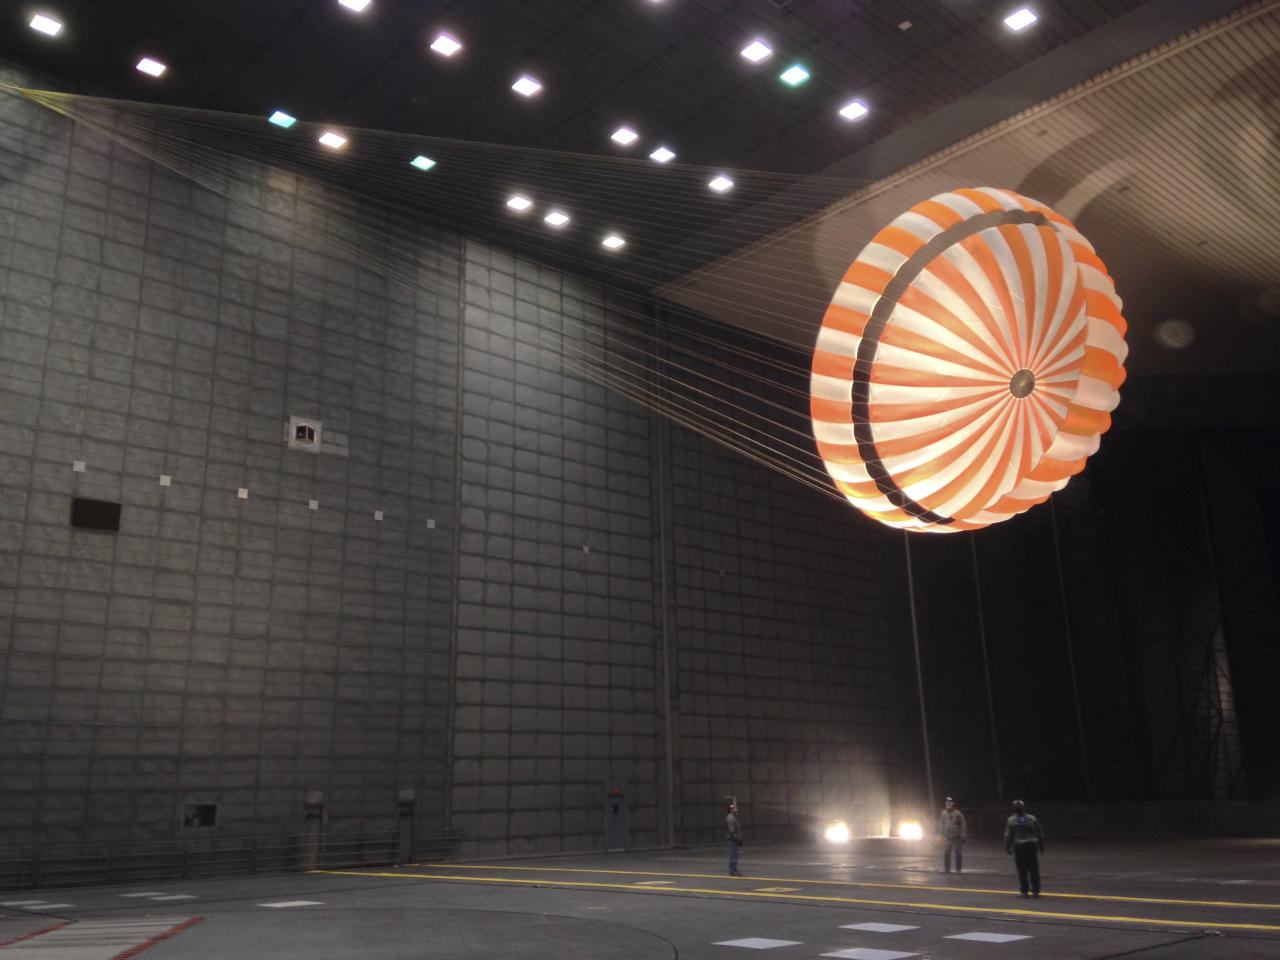 In this February 2015 photo made available by NASA, the parachute for the InSight mission to Mars is tested inside the world's largest wind tunnel at NASA Ames Research Center in Mountain View, Calif. NASA's InSight spacecraft will enter the Martian atmosphere at supersonic speed, then hit the brakes to get to a soft, safe landing on the alien red plains. After micromanaging every step of the way, flight controllers will be powerless over what happens at the end of the road, nearly 100 million miles away.(NASA/JPL-Caltech/Lockheed Martin via AP)